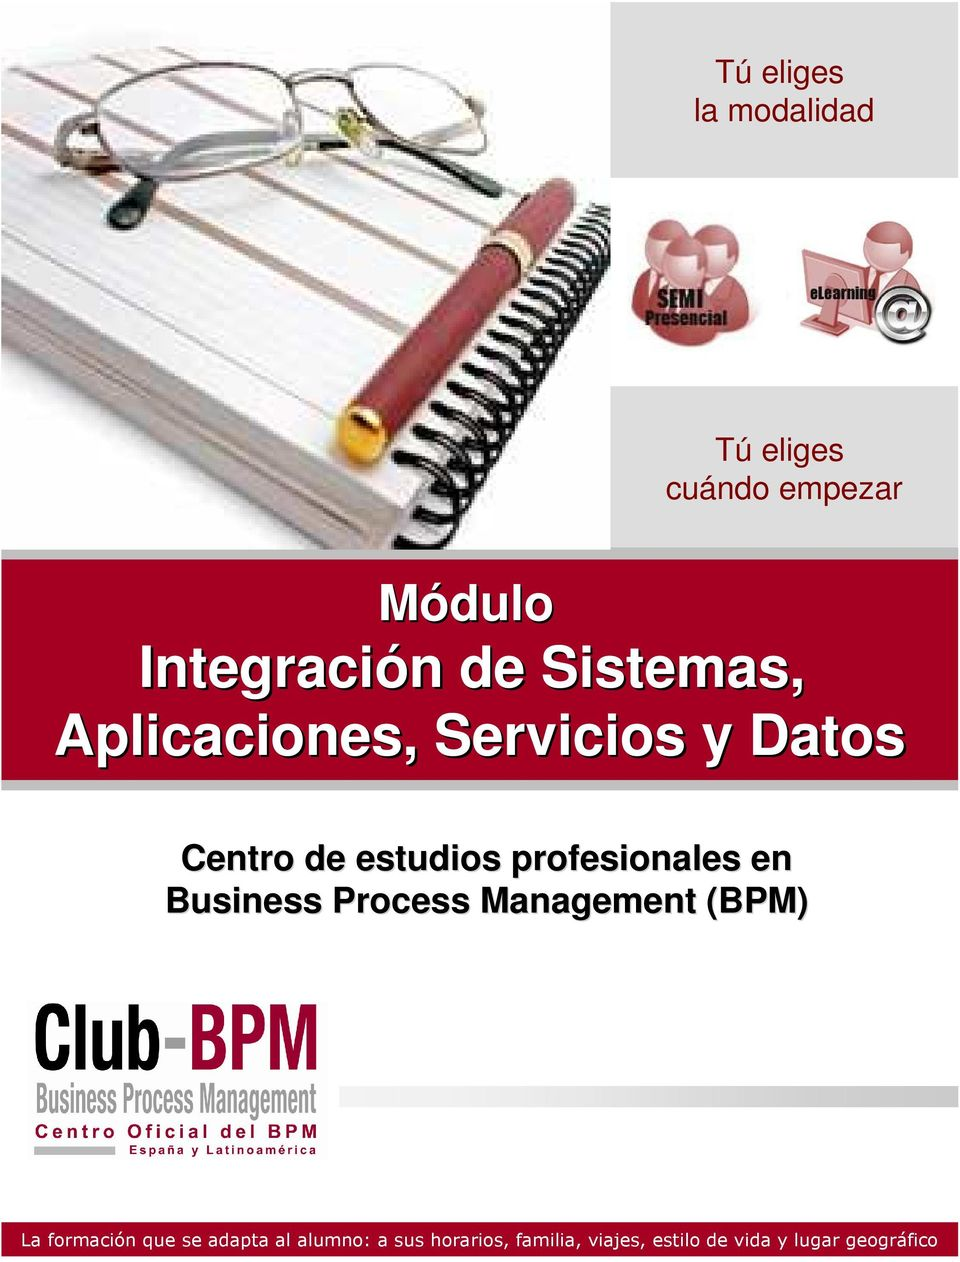 profesionales en Business Process Management (BPM) La formación que se